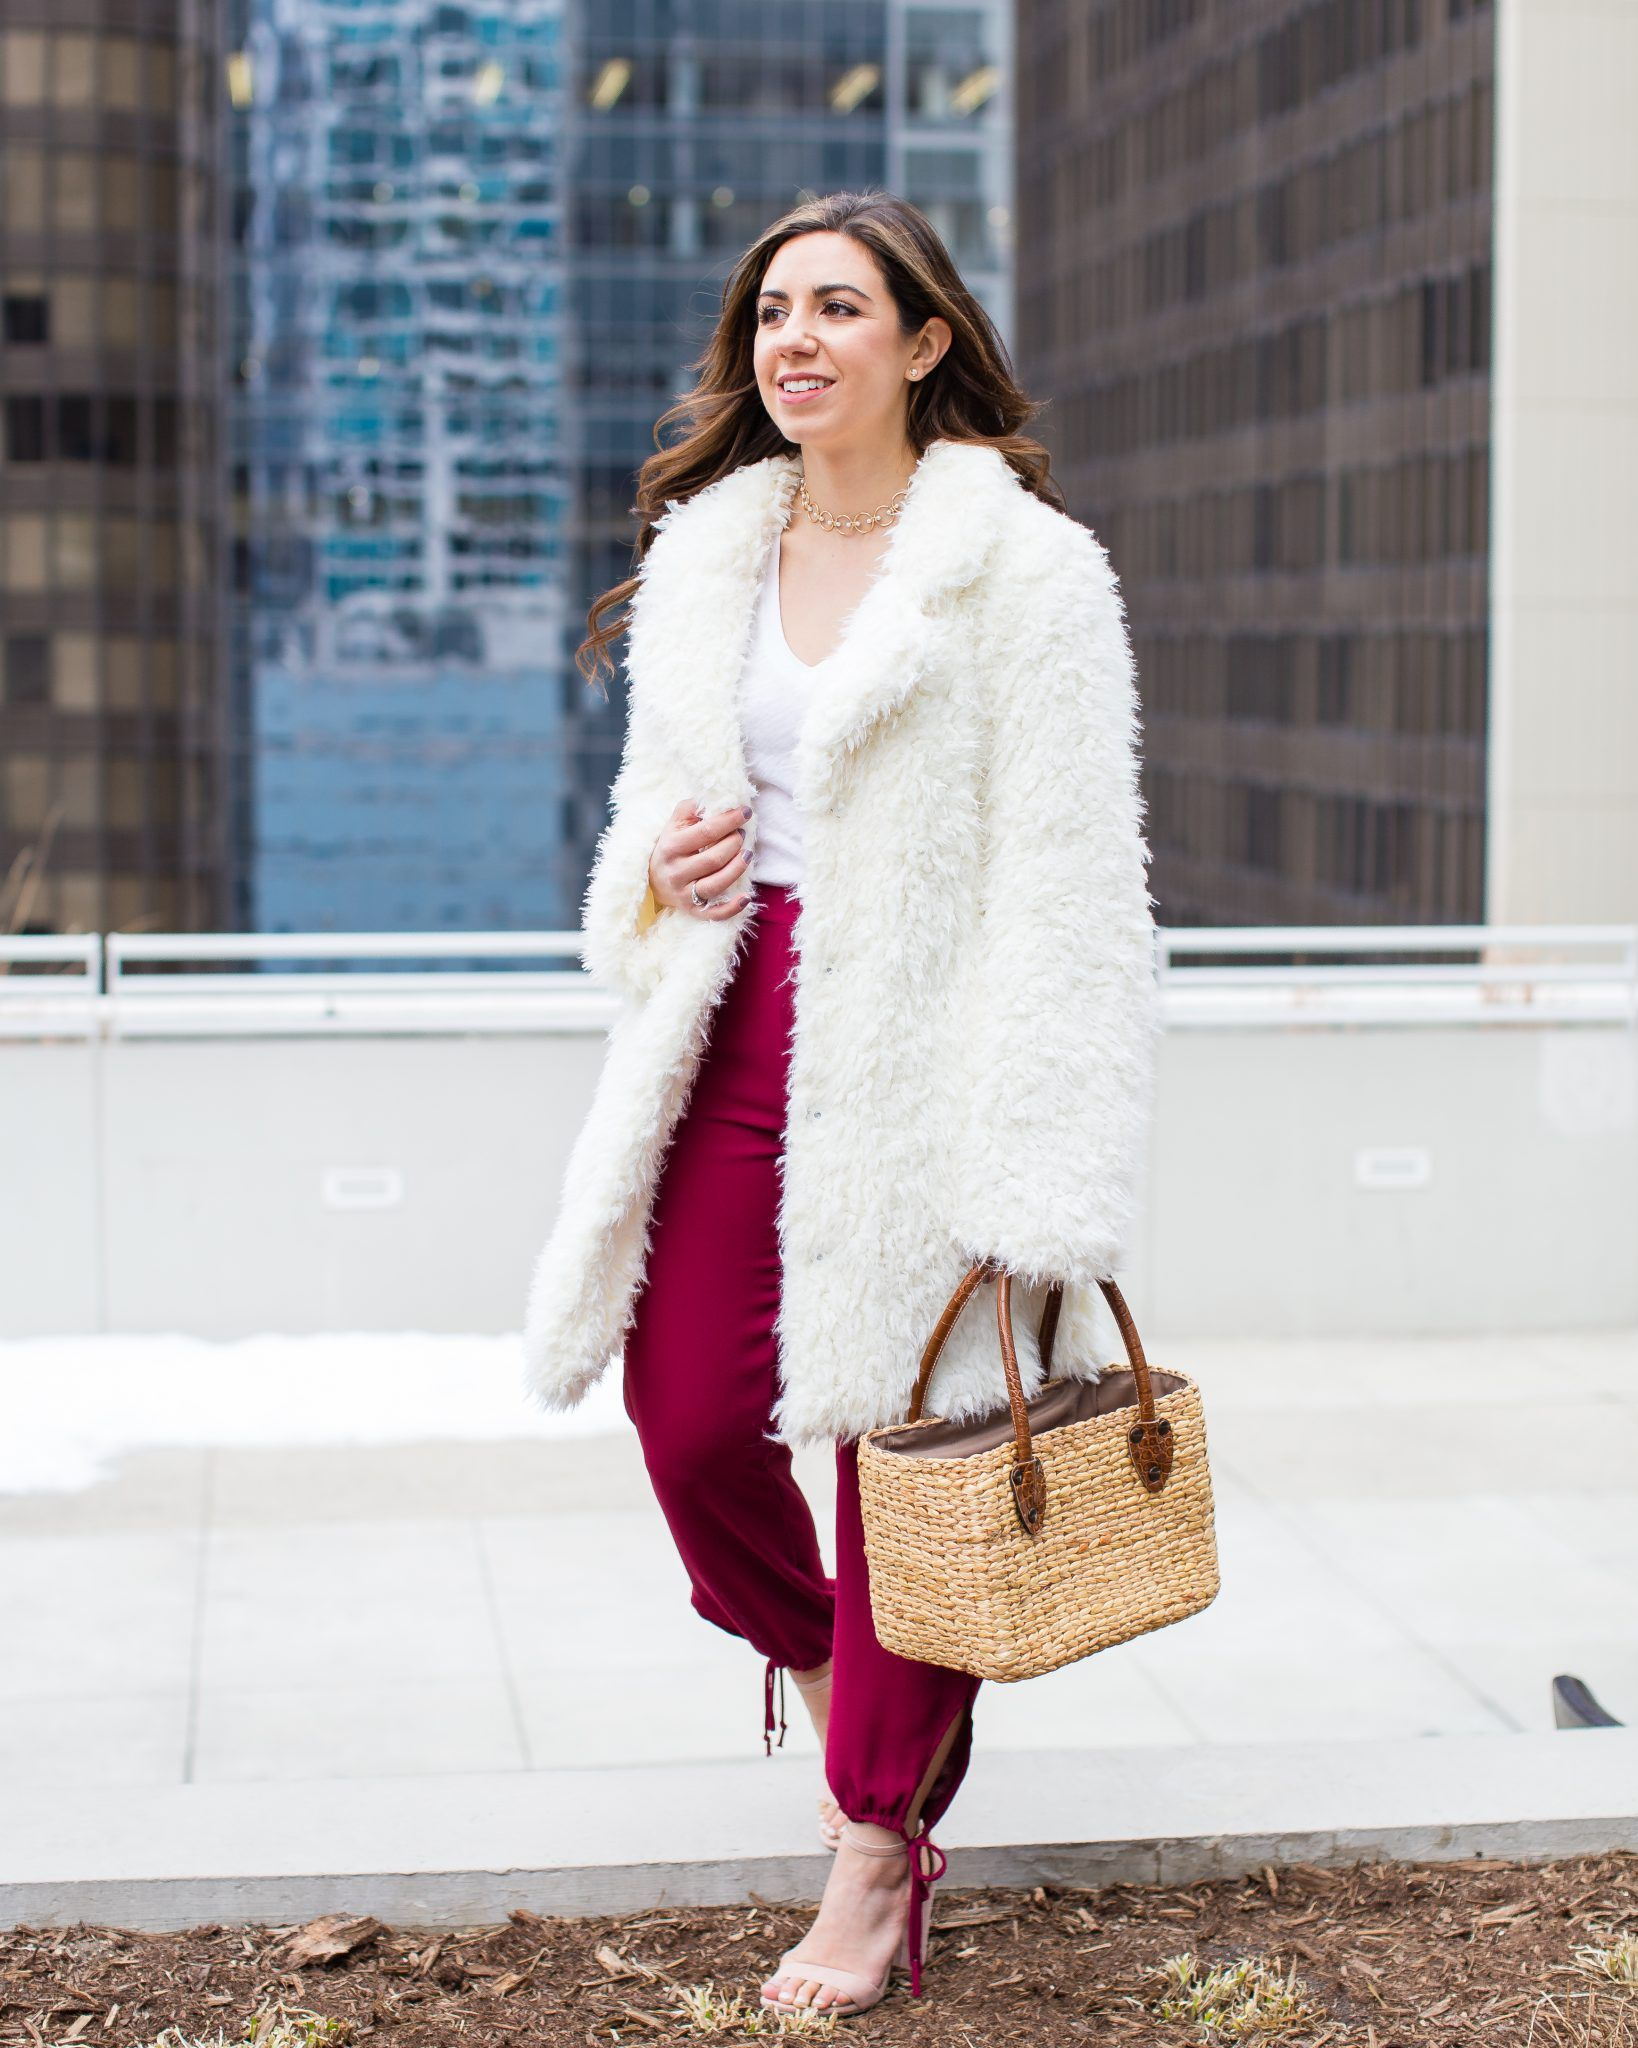 ad1abd2d9ec Lifestyle blogger Roxanne of Glass of Glam wearing a shaggy coat